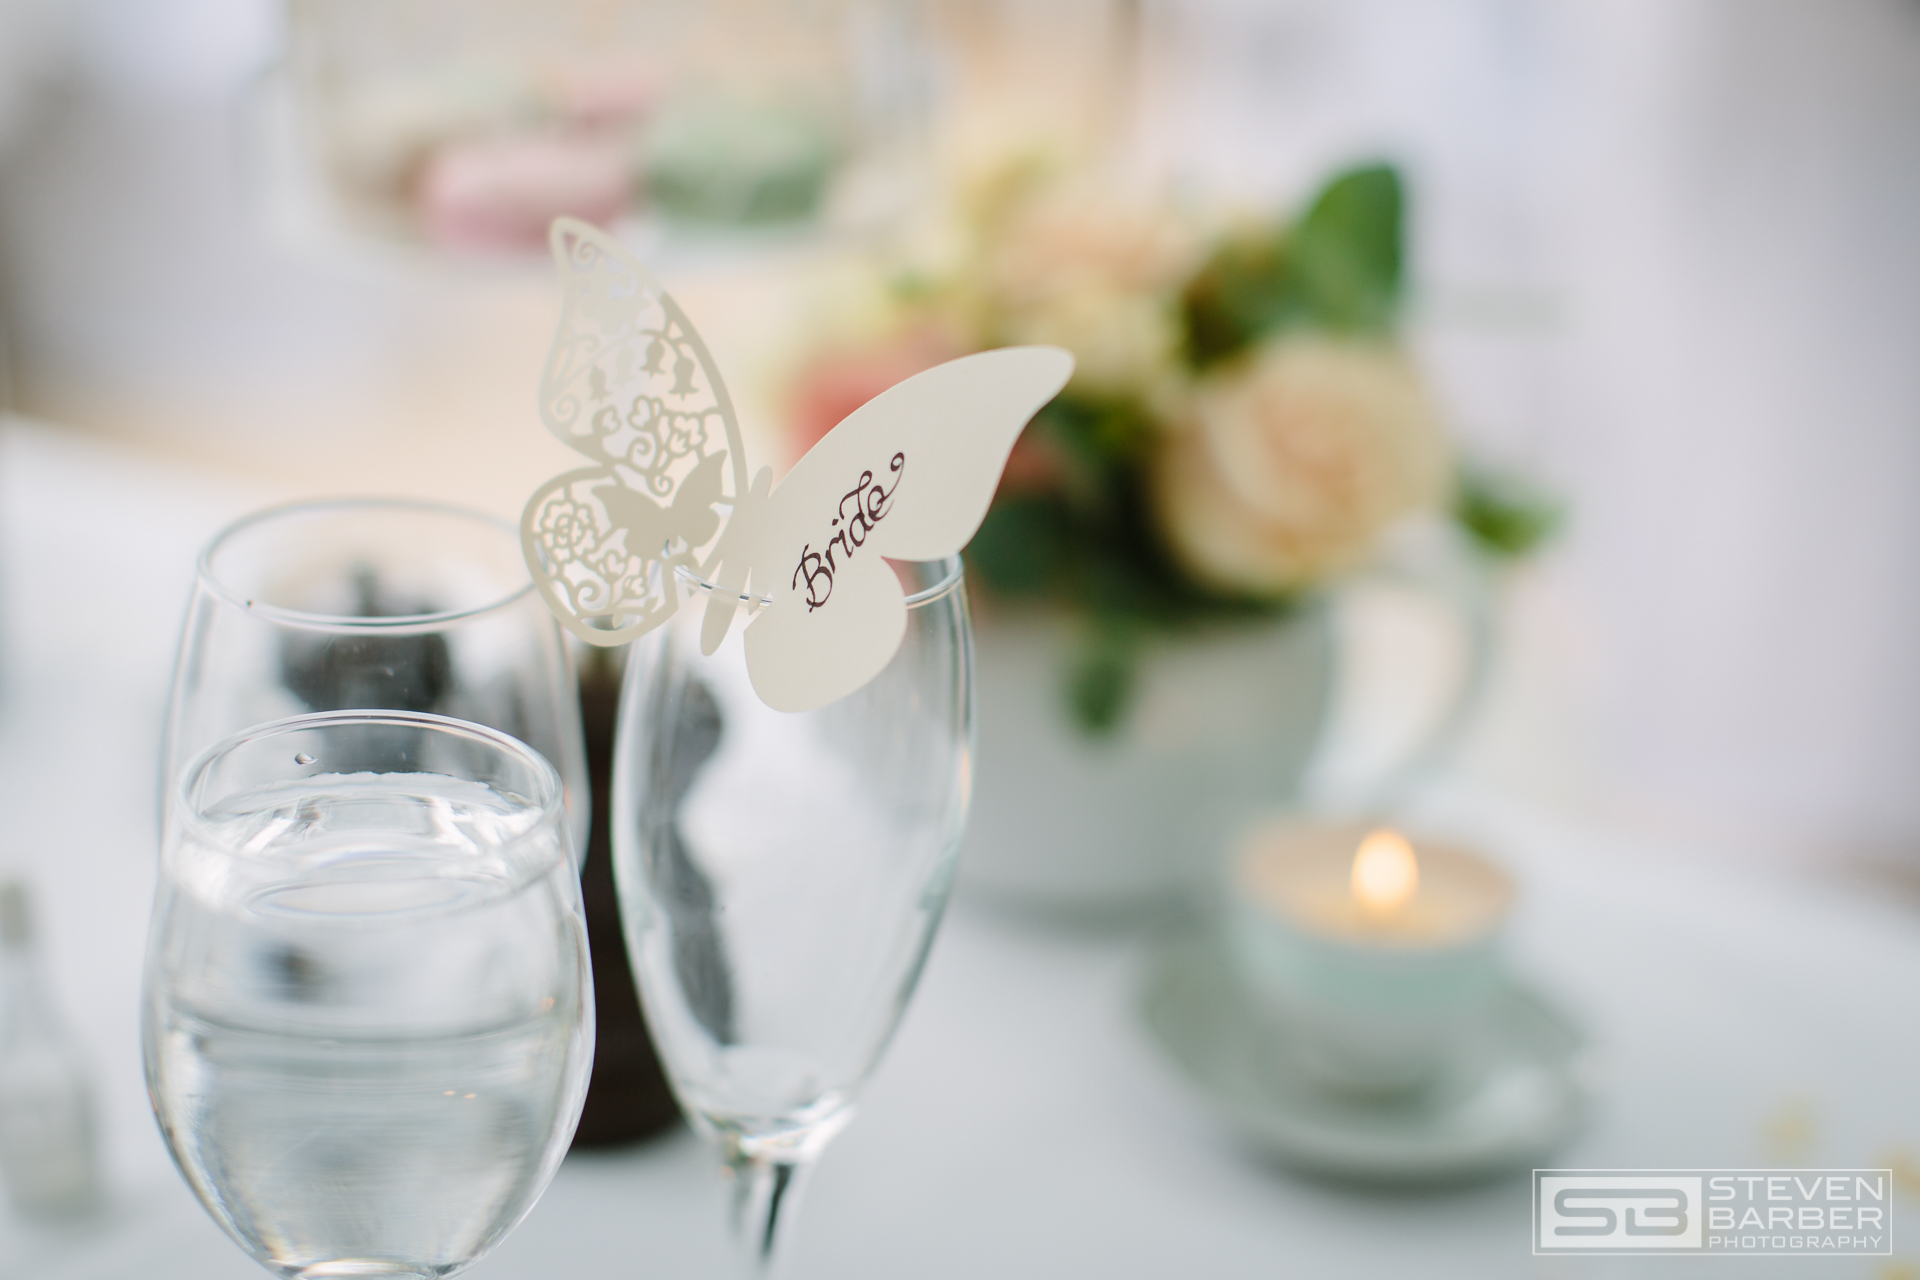 Sue + Paul\'s wedding at The Swan Hotel - Steven Barber Photography